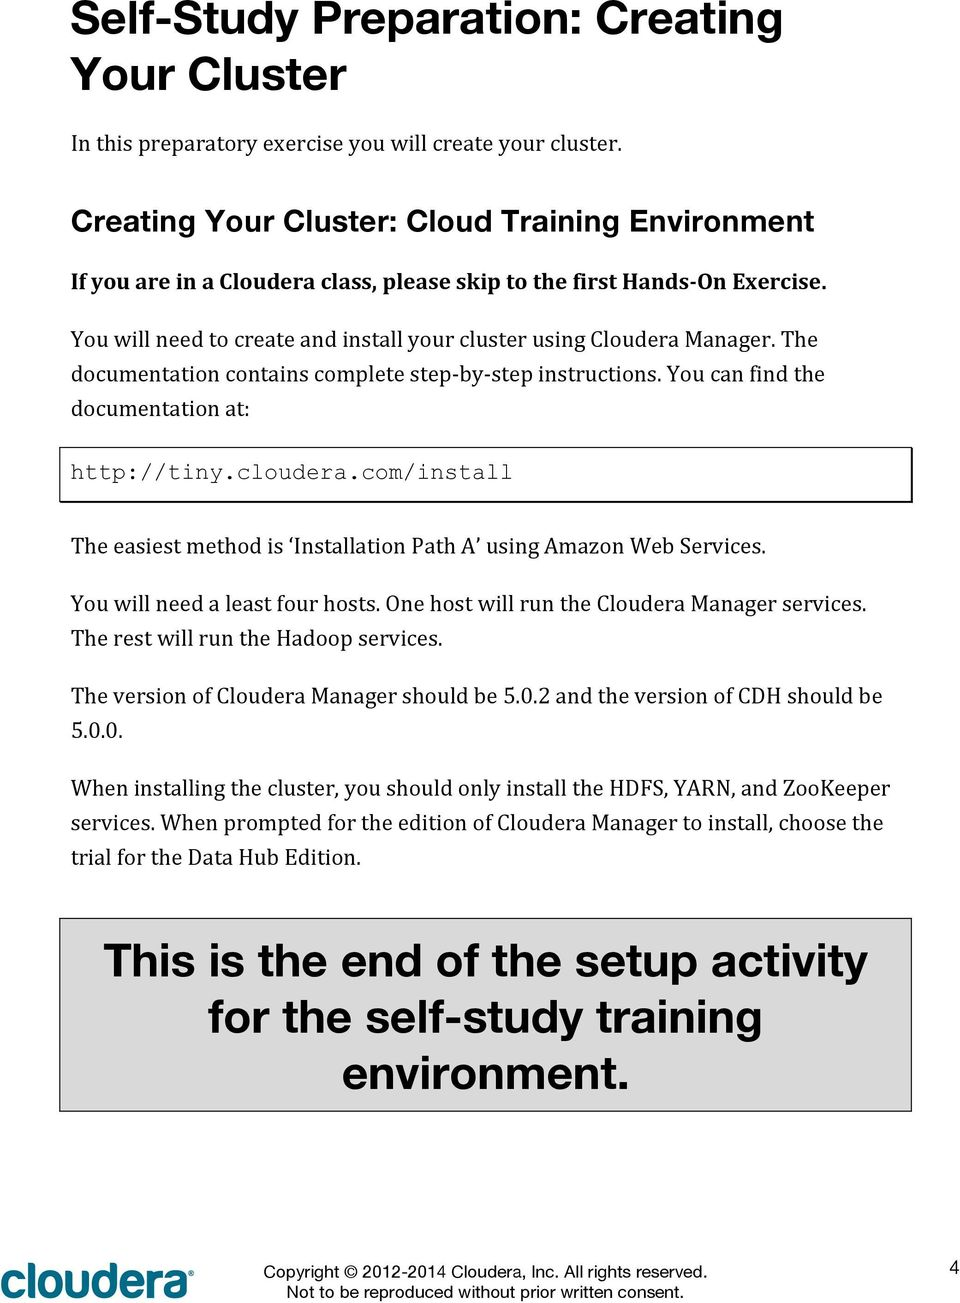 The documentation contains complete step- by- step instructions. You can find the documentation at: http://tiny.cloudera.